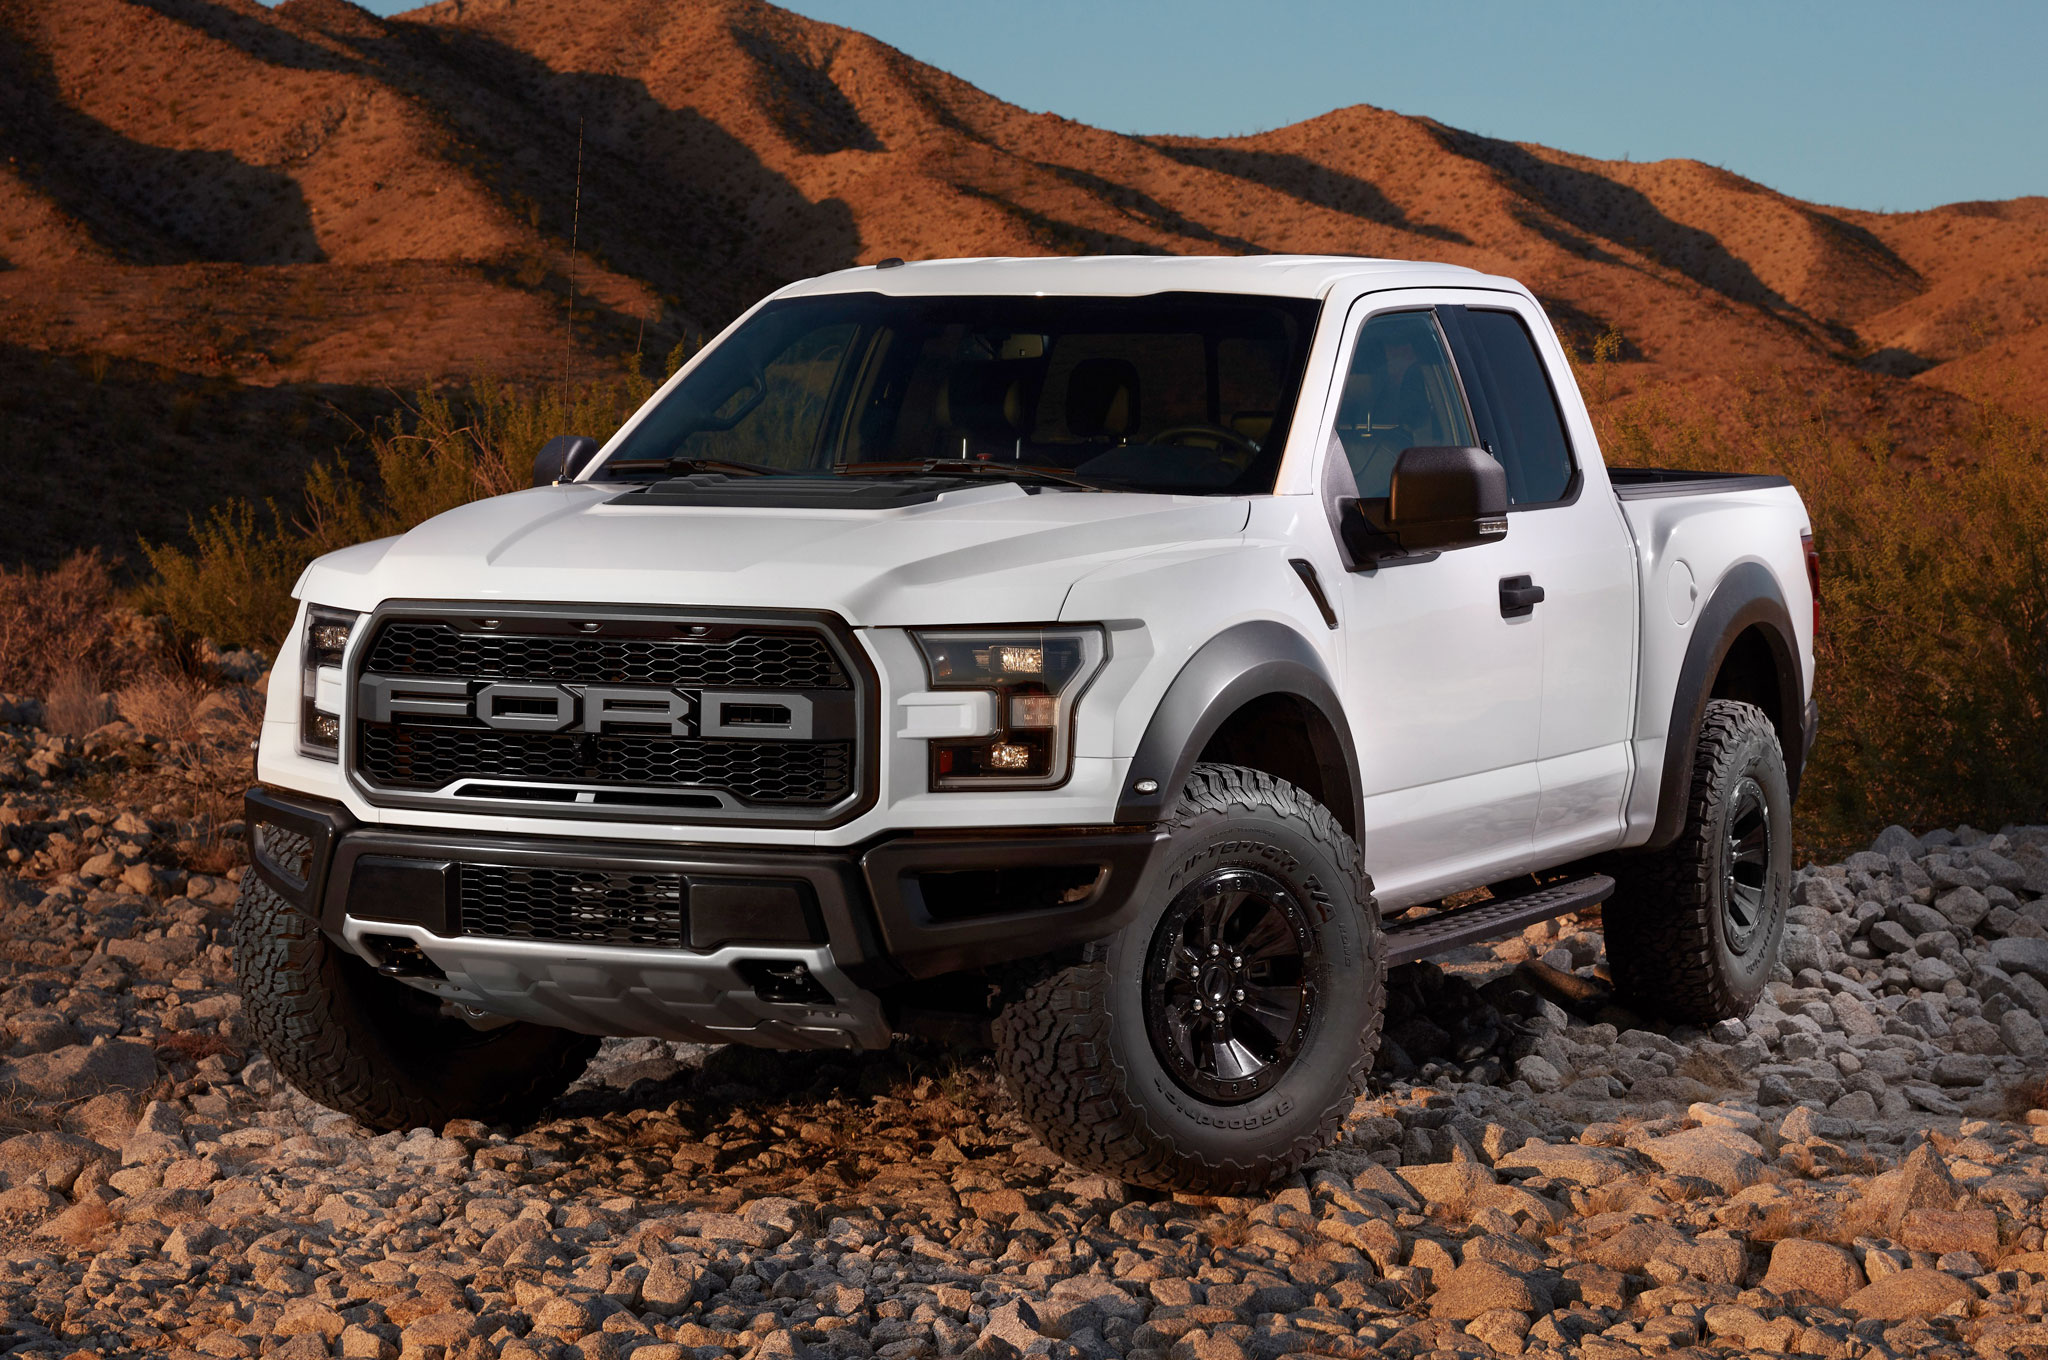 2017 ford f 150 raptor pricing leaked may start around 49 520. Black Bedroom Furniture Sets. Home Design Ideas